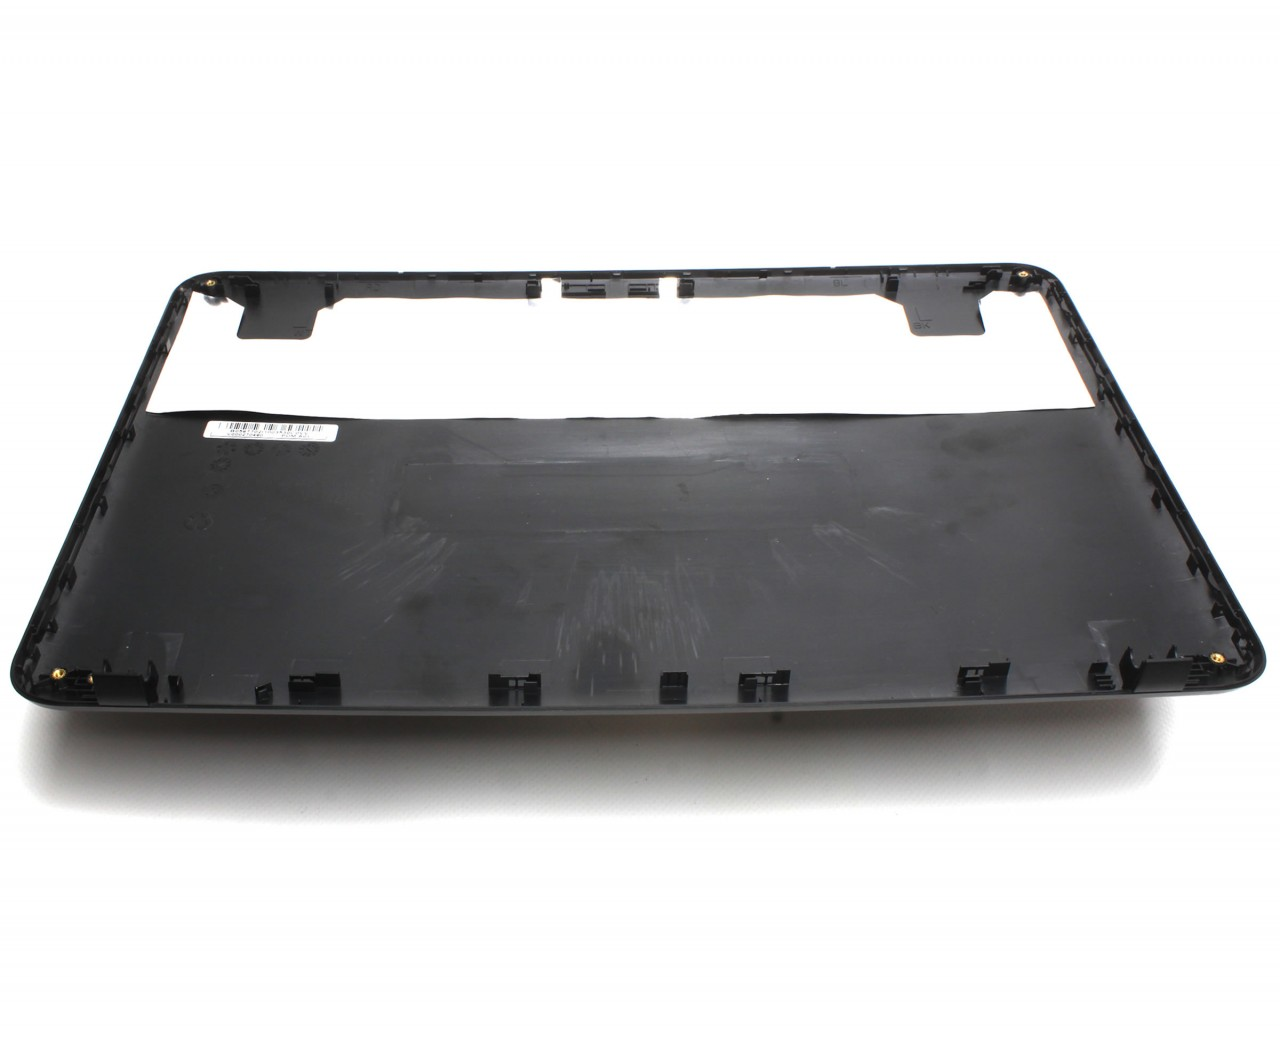 Capac Display BackCover Toshiba V000270400 Carcasa Display Neagra cu 2 Suruburi Balamale imagine powerlaptop.ro 2021